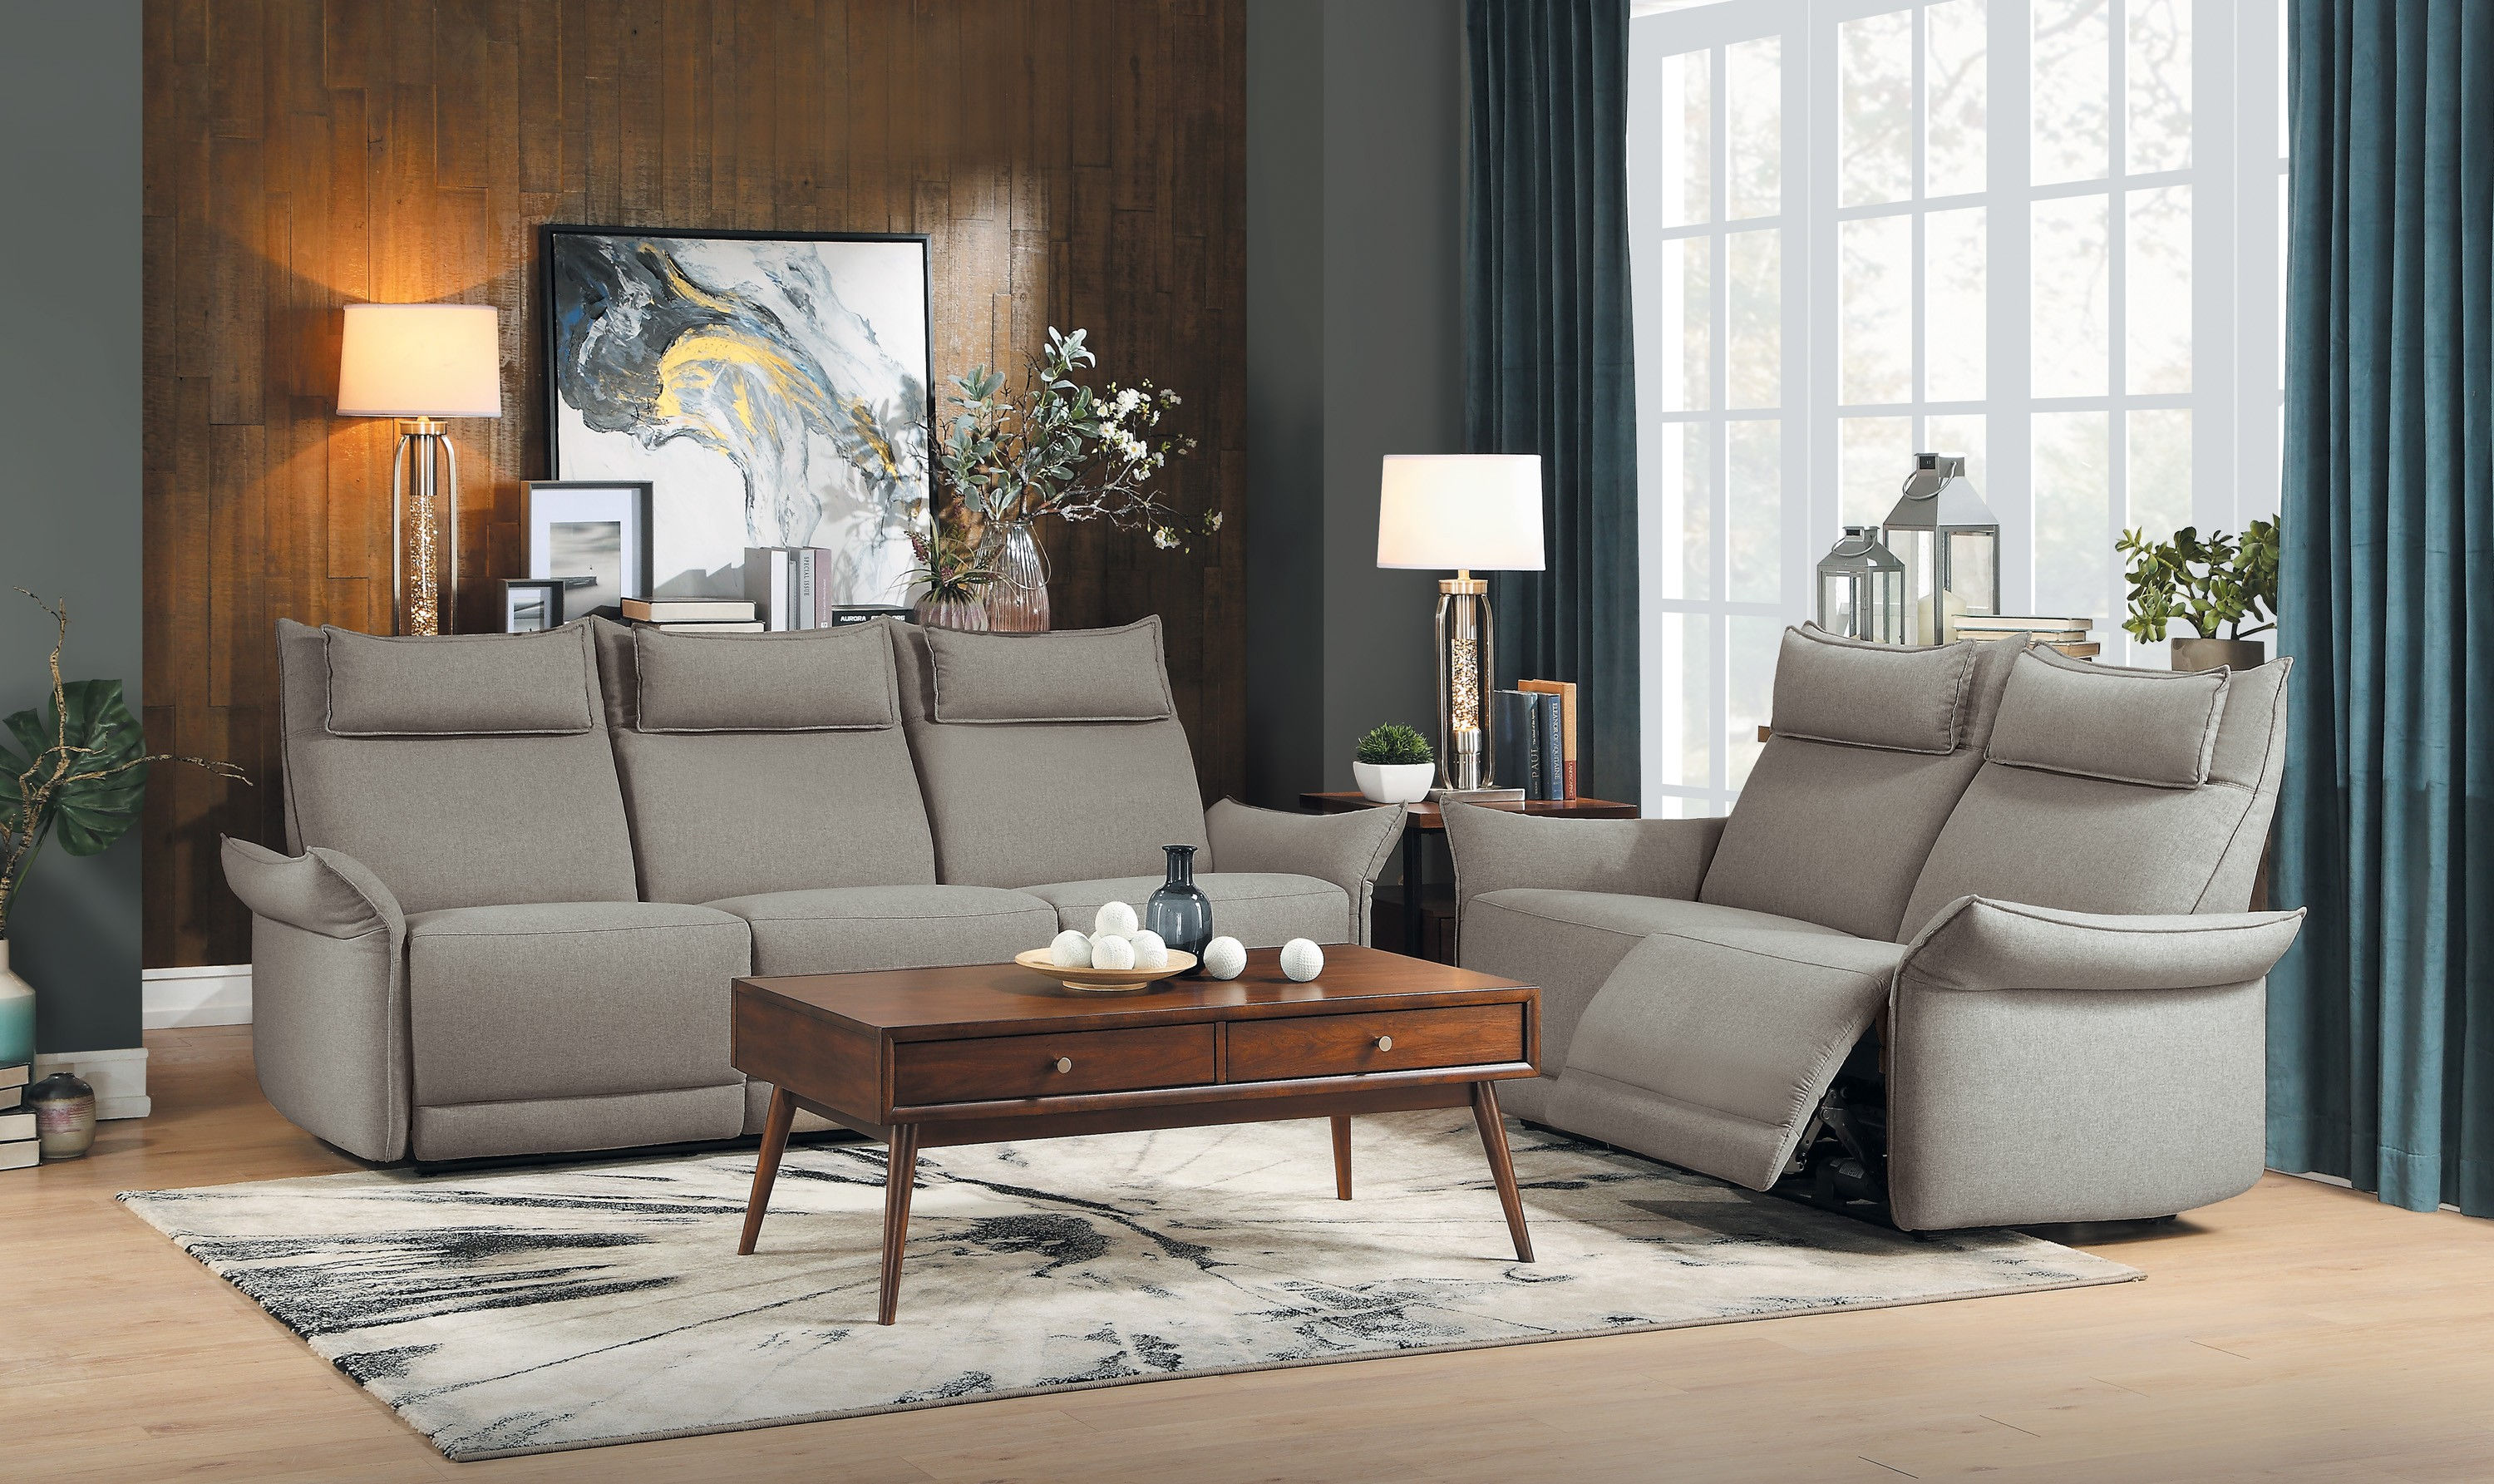 Home Elegance Linette Taupe 2pc Living Room Set